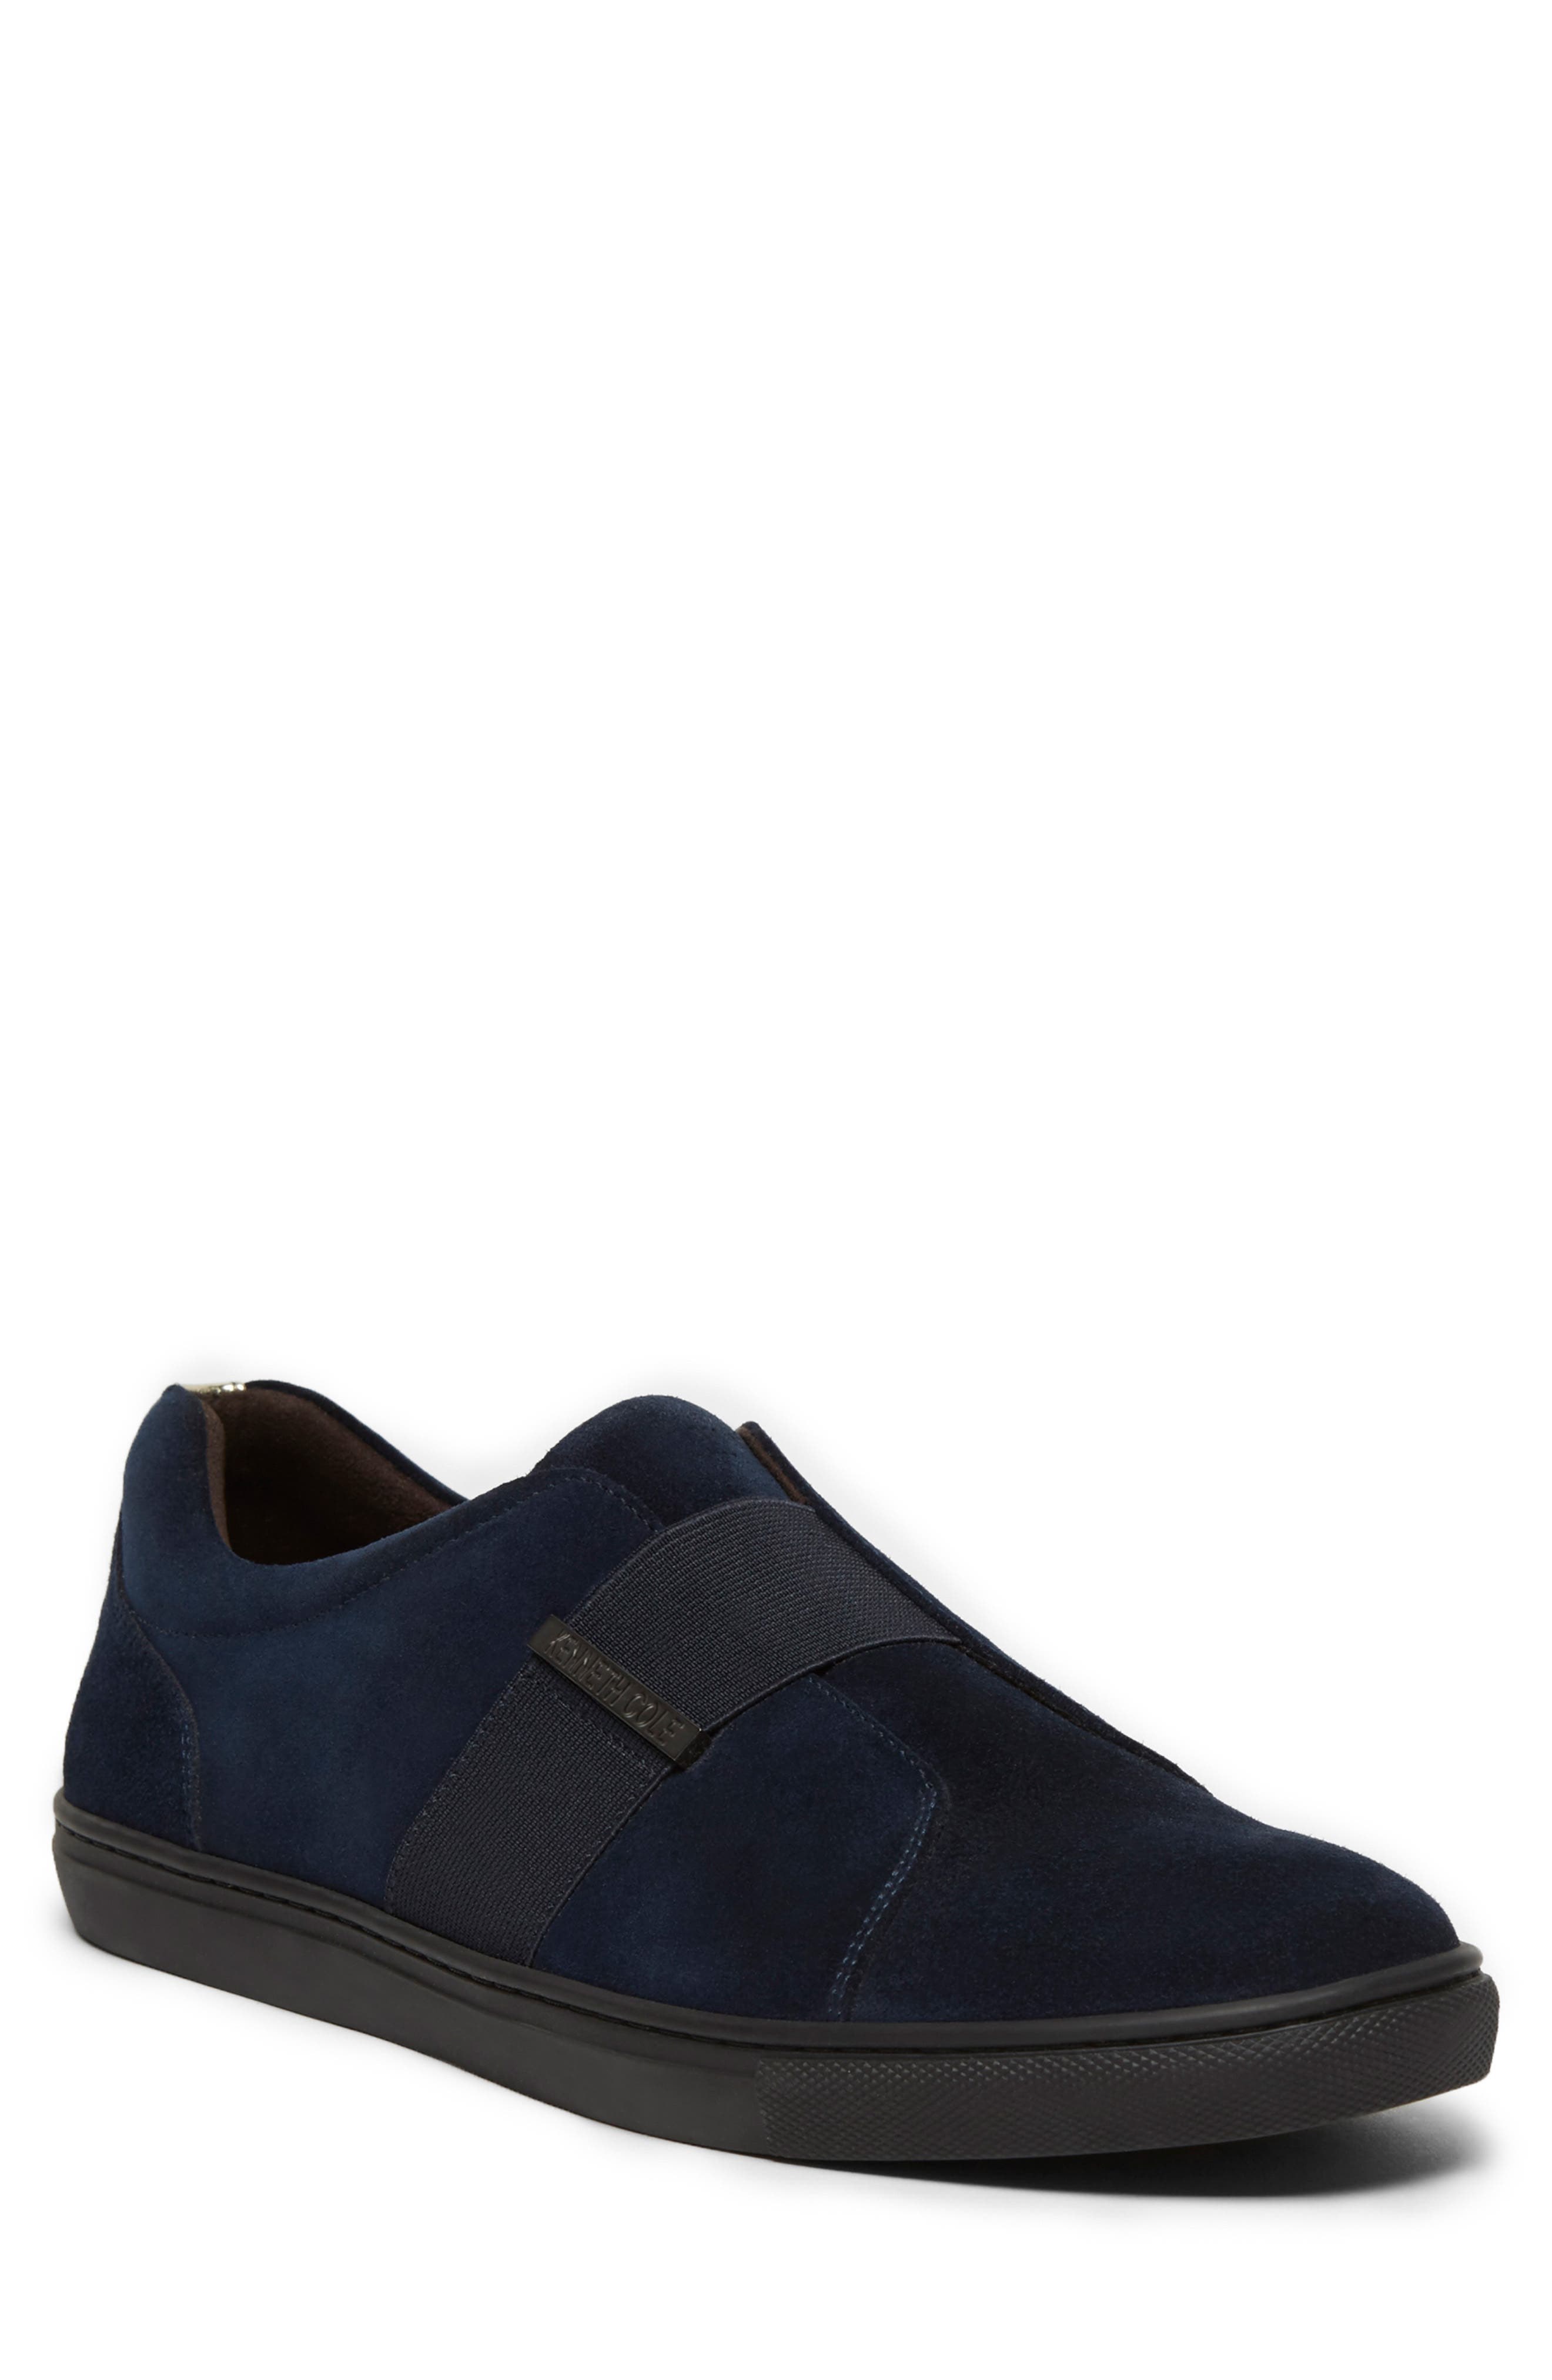 KENNETH COLE NEW YORK, Kam Slip-On, Main thumbnail 1, color, NAVY SUEDE